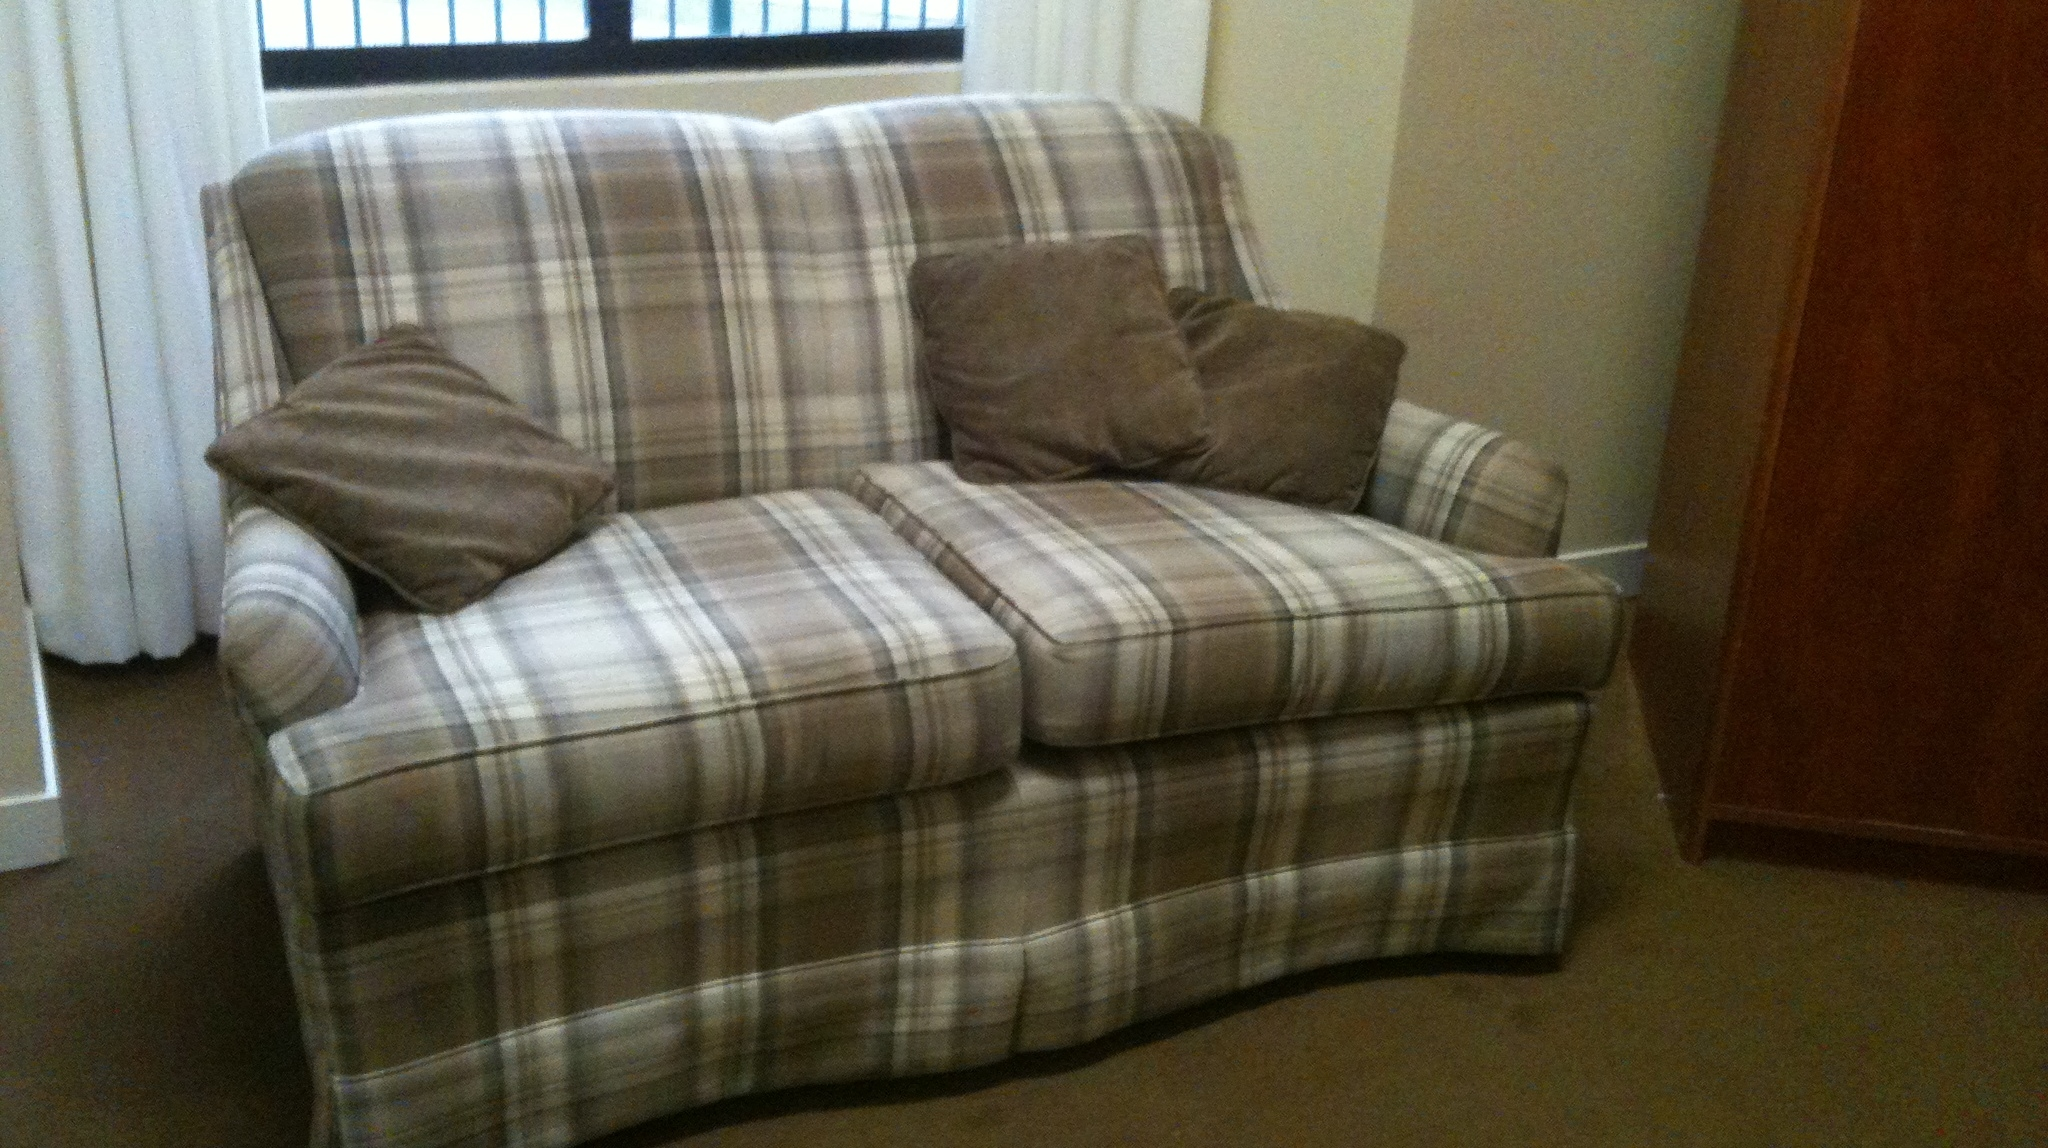 A plaid love seat owned by Barbara Falconer Newhall's mother. My Mother's Stuff. Photo by Barbara Newhall